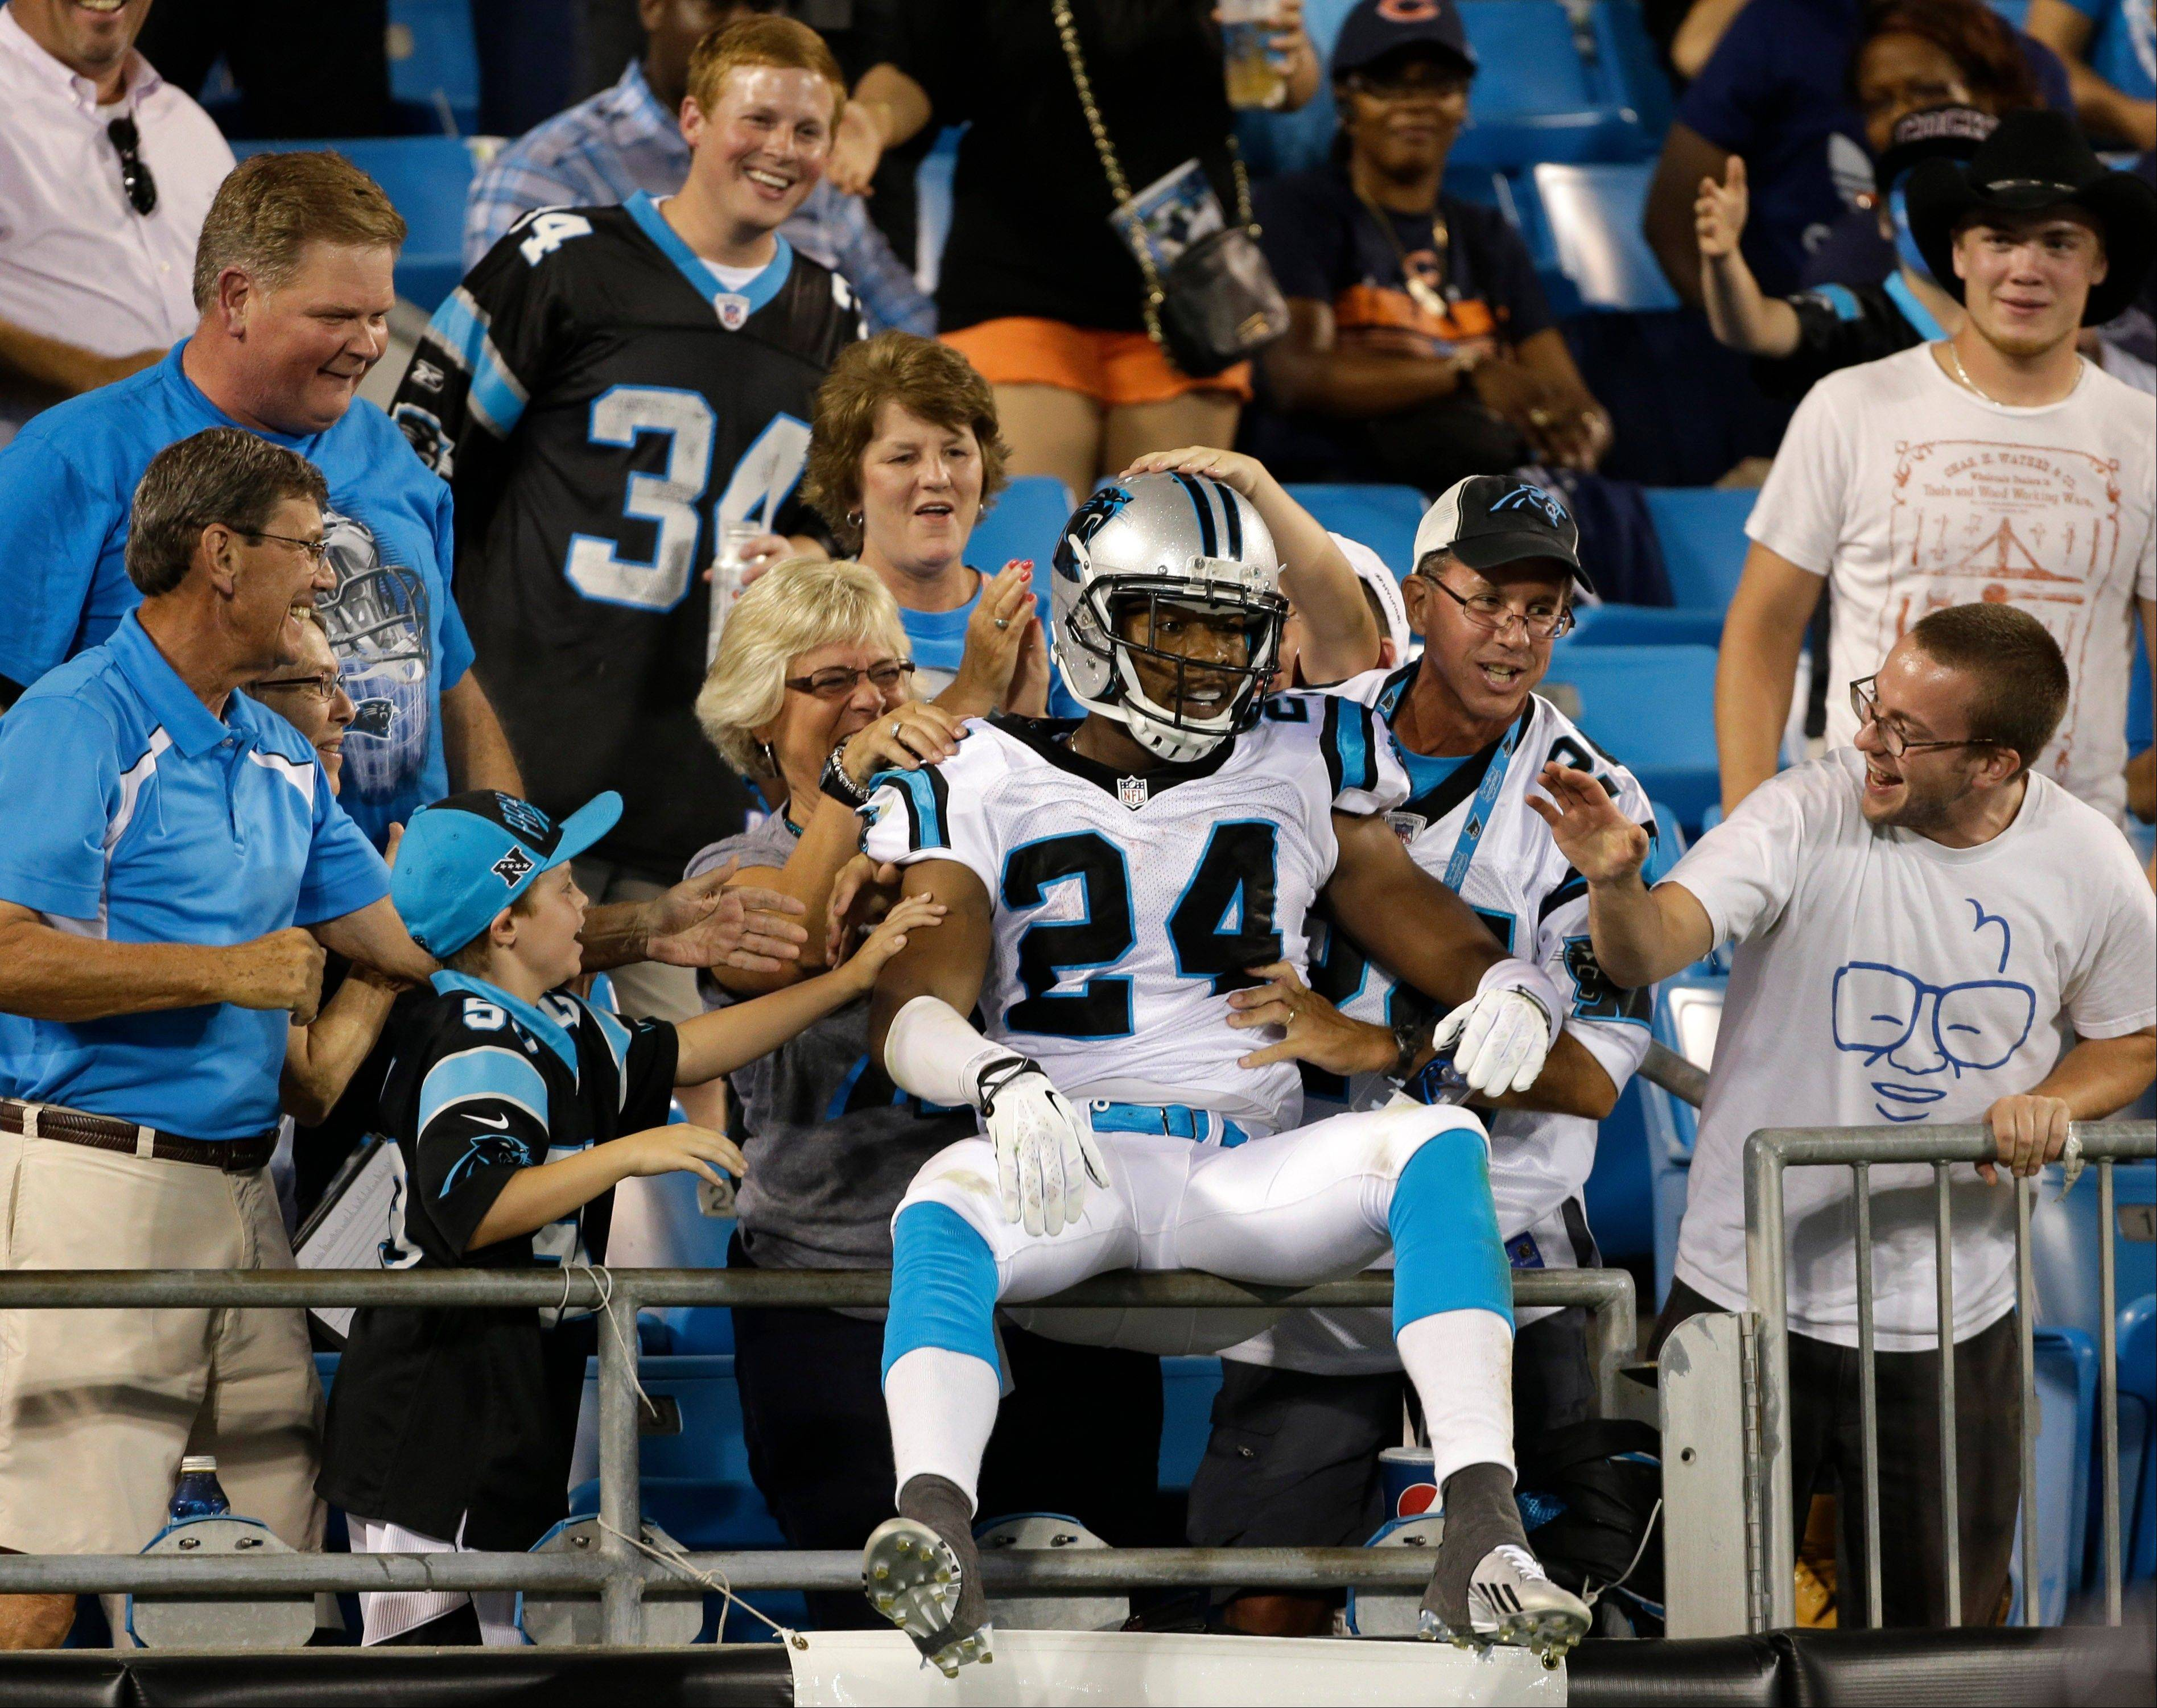 Carolina Panthers defensive back Josh Norman grabs a seat in the stands after his interception return against the Bears on Friday. Mike North wants Chicago fans to pull up a seat on Sunday mornings for his new radio show on AM560 The Answer. The two-hour pregame program debuts on Sept. 8 before the Bears' home opener.